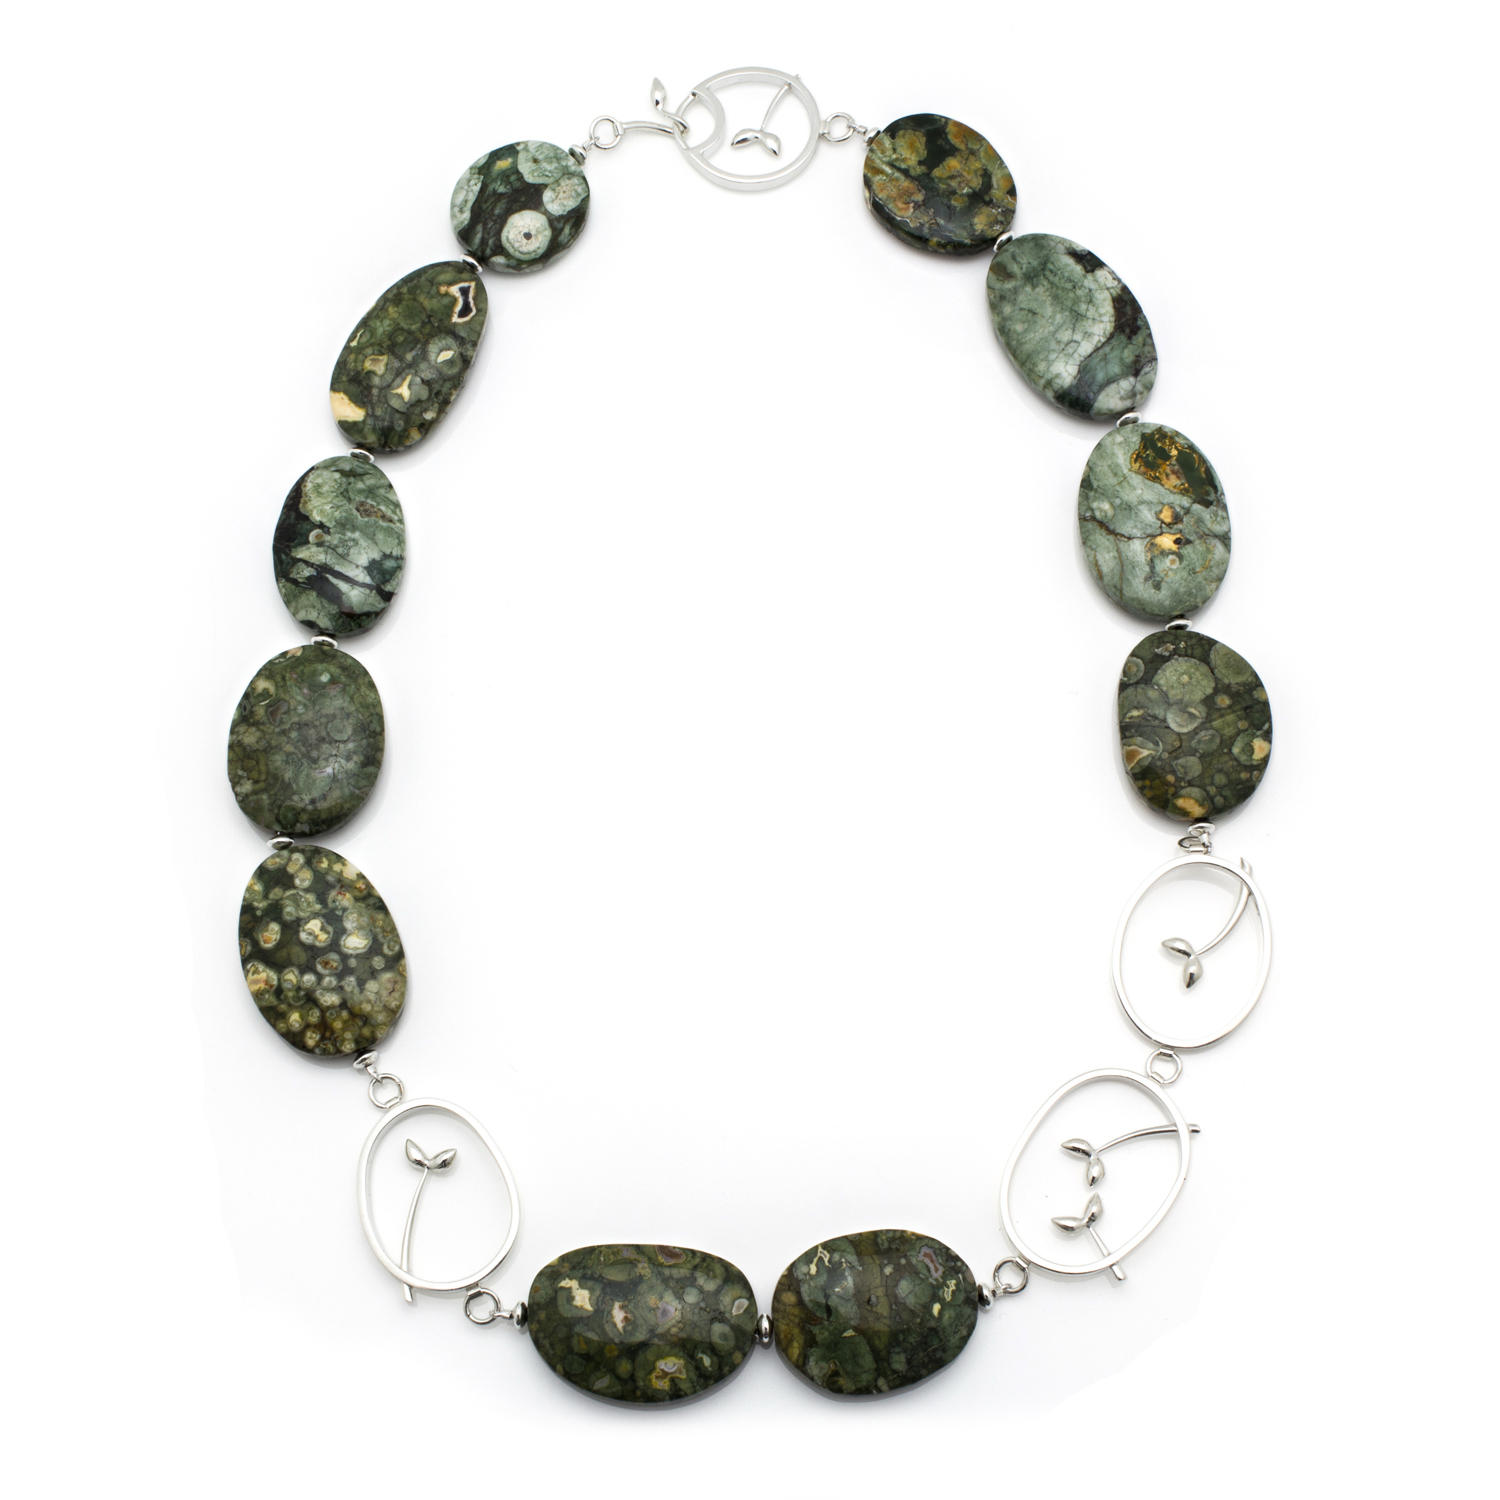 Riverside Ryolite Necklace